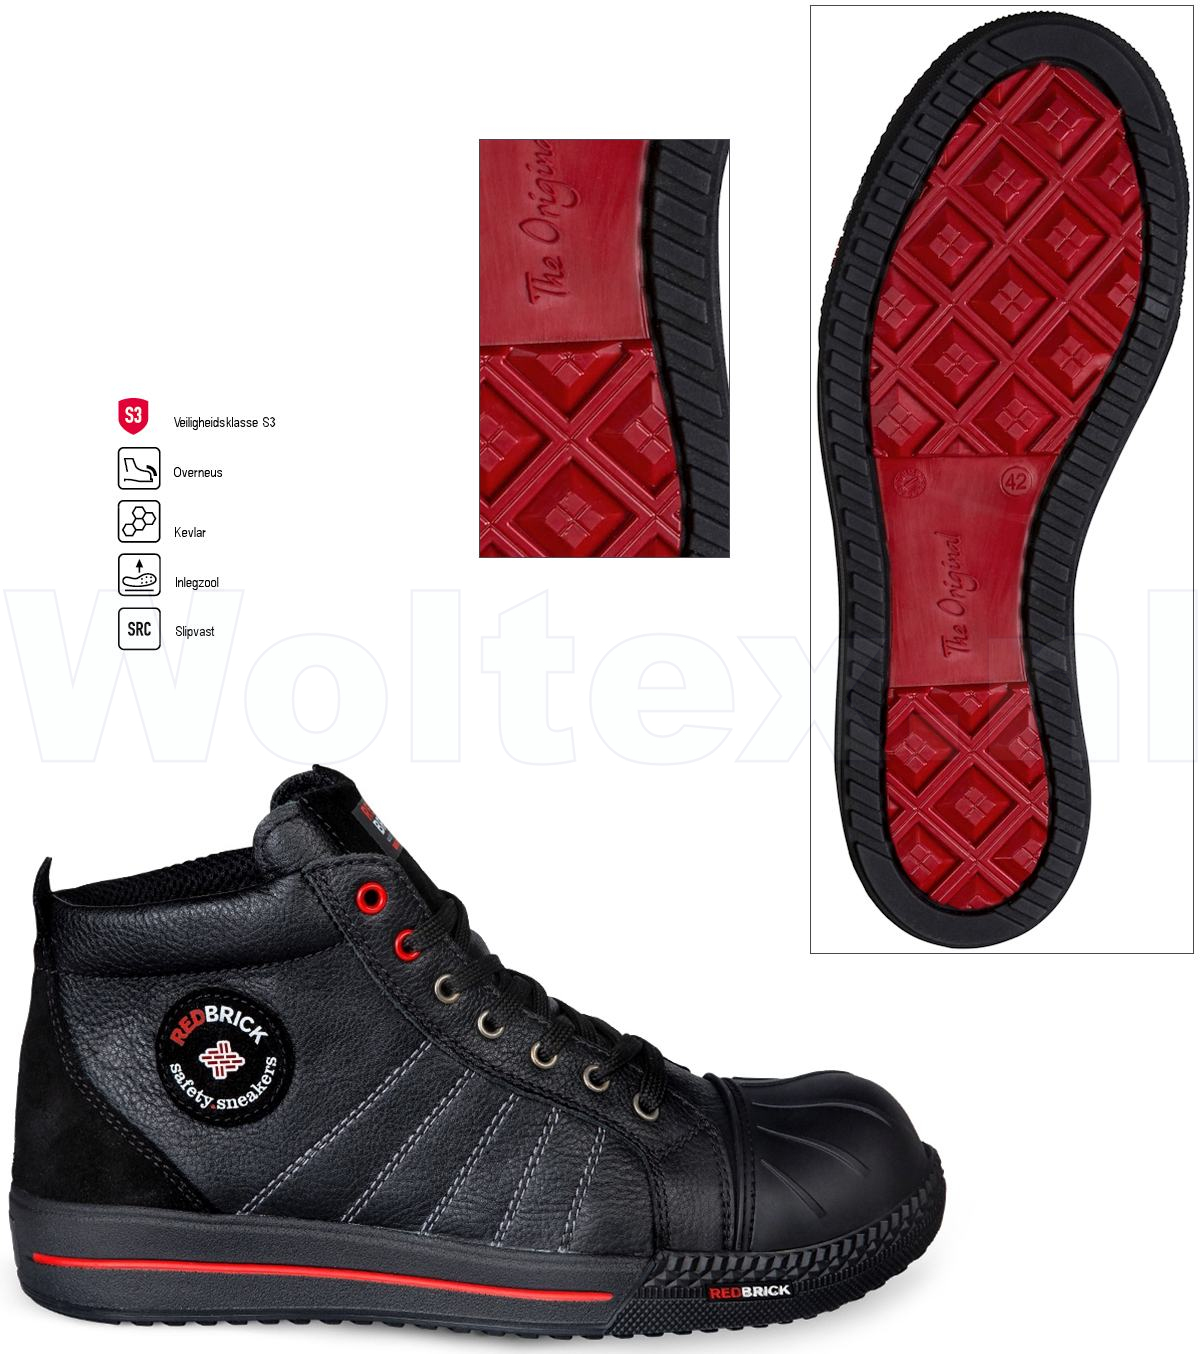 Safety Werkschoenen.Redbrick Safety Sneakers Originals S3 Werkschoenen Onyx Overneus